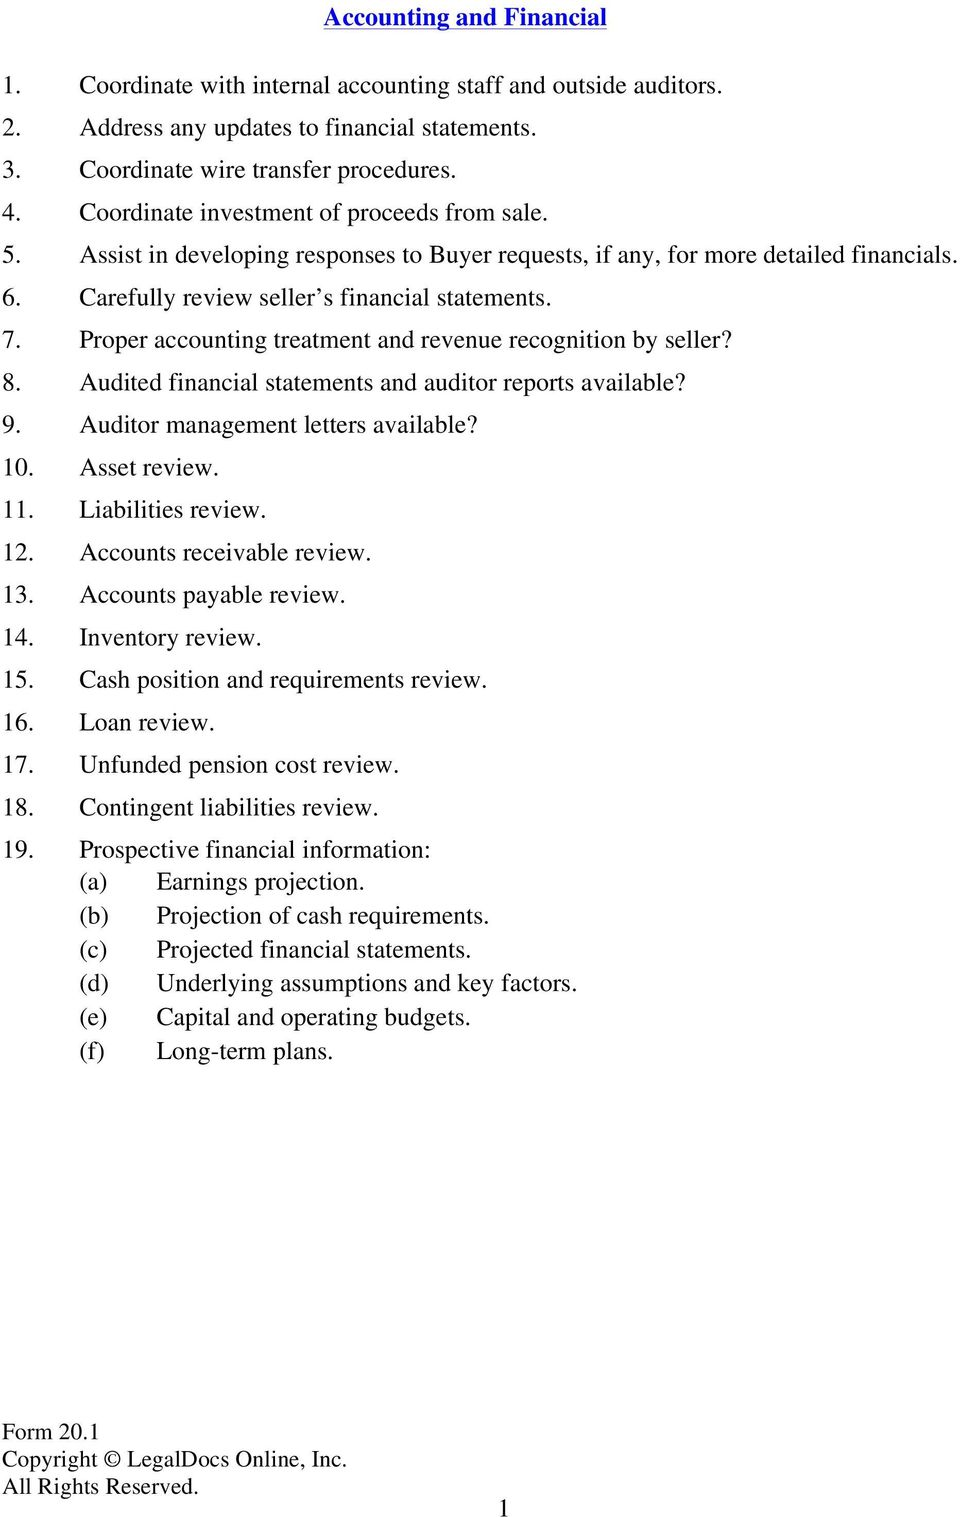 Due Diligence Checklist For Acquisition Of A Private Company Pdf